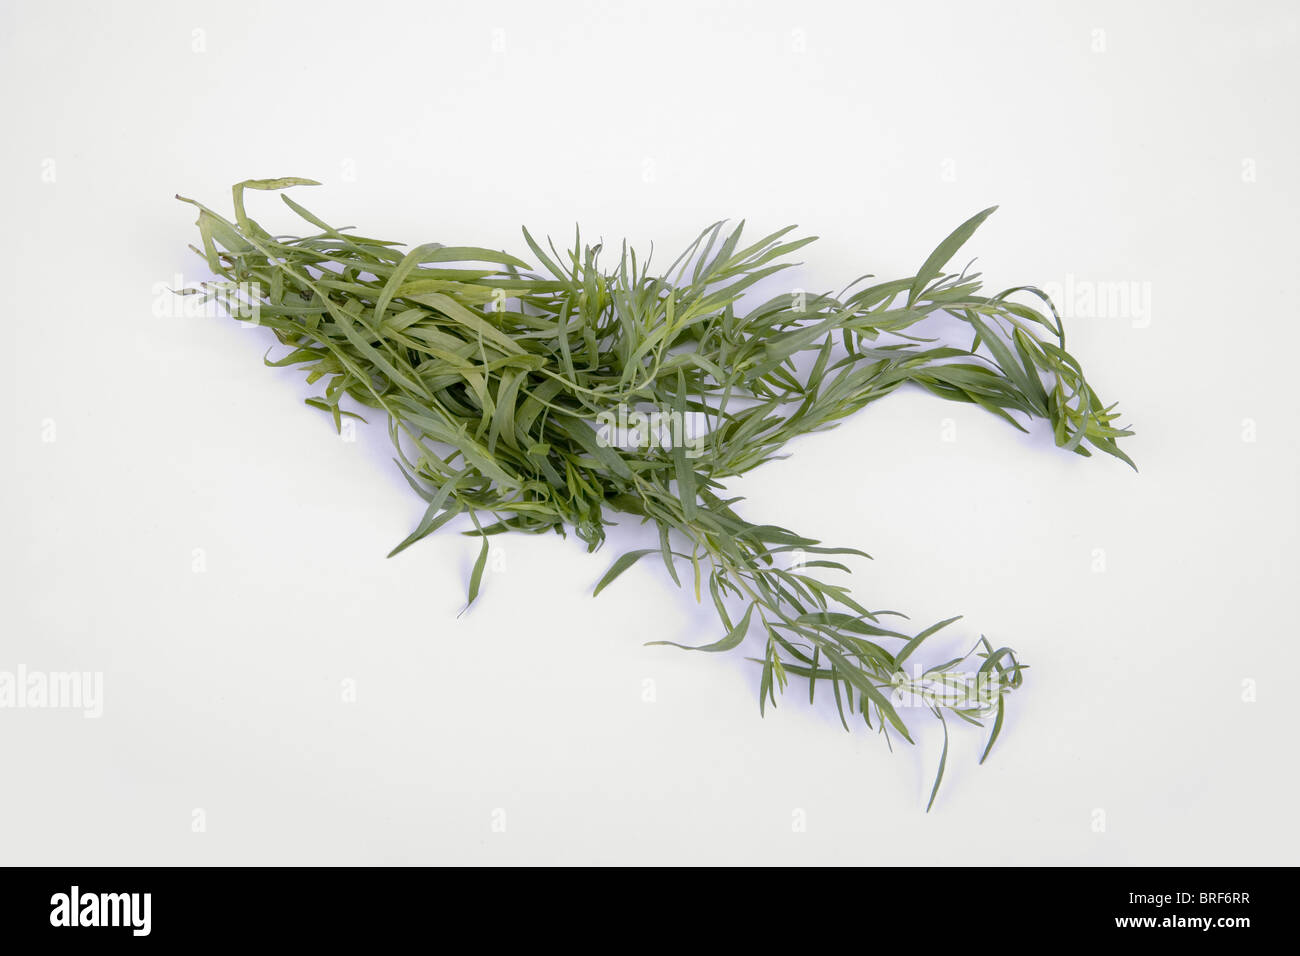 Tarragon on white background, close-up - Stock Image